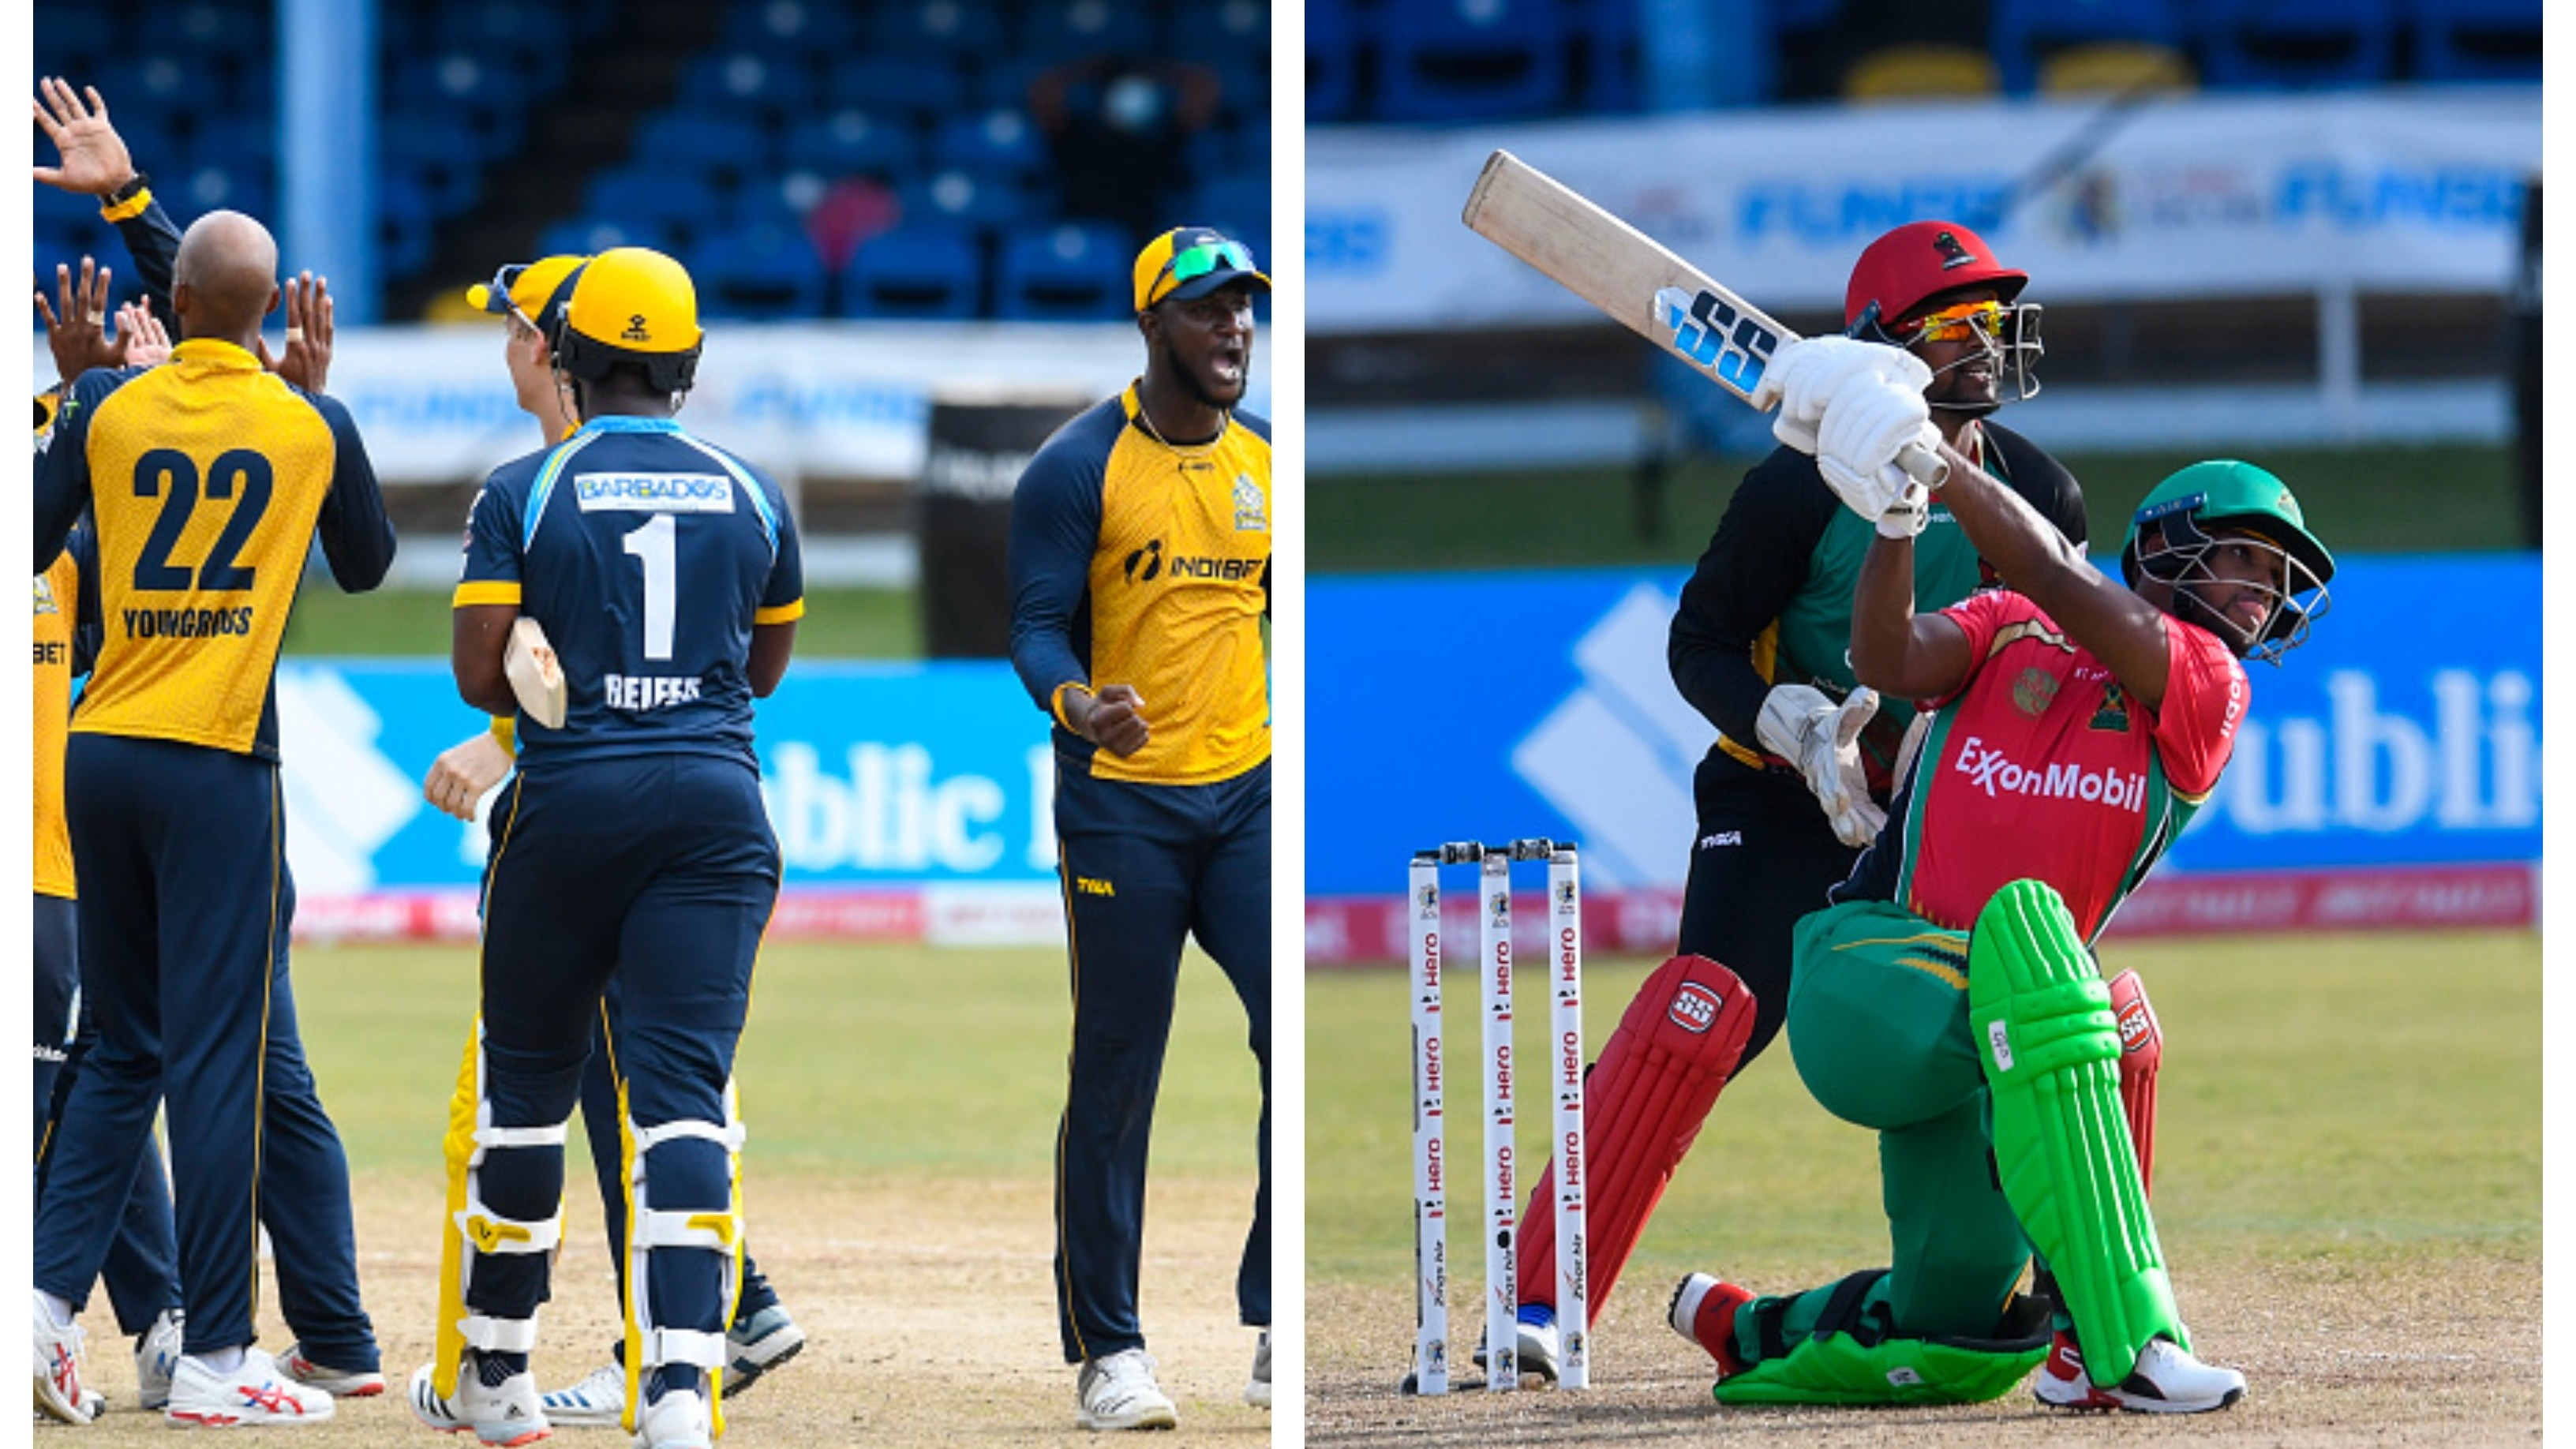 CPL 2020: Zouks win over Tridents in a low-scoring contest;Pooran's ton takes Warriors past Patriots